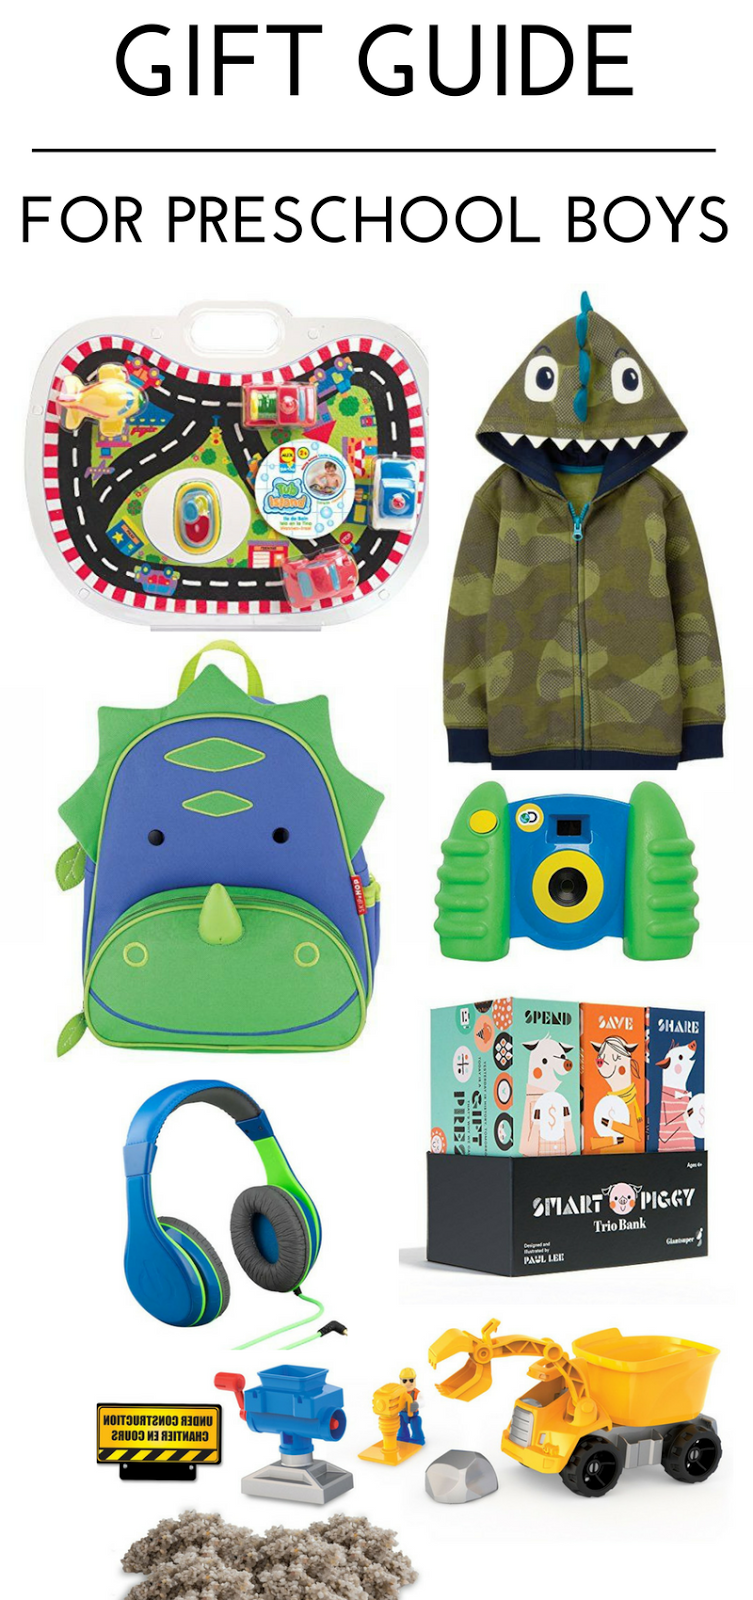 gift ideas for preschool boys 3-4 years old